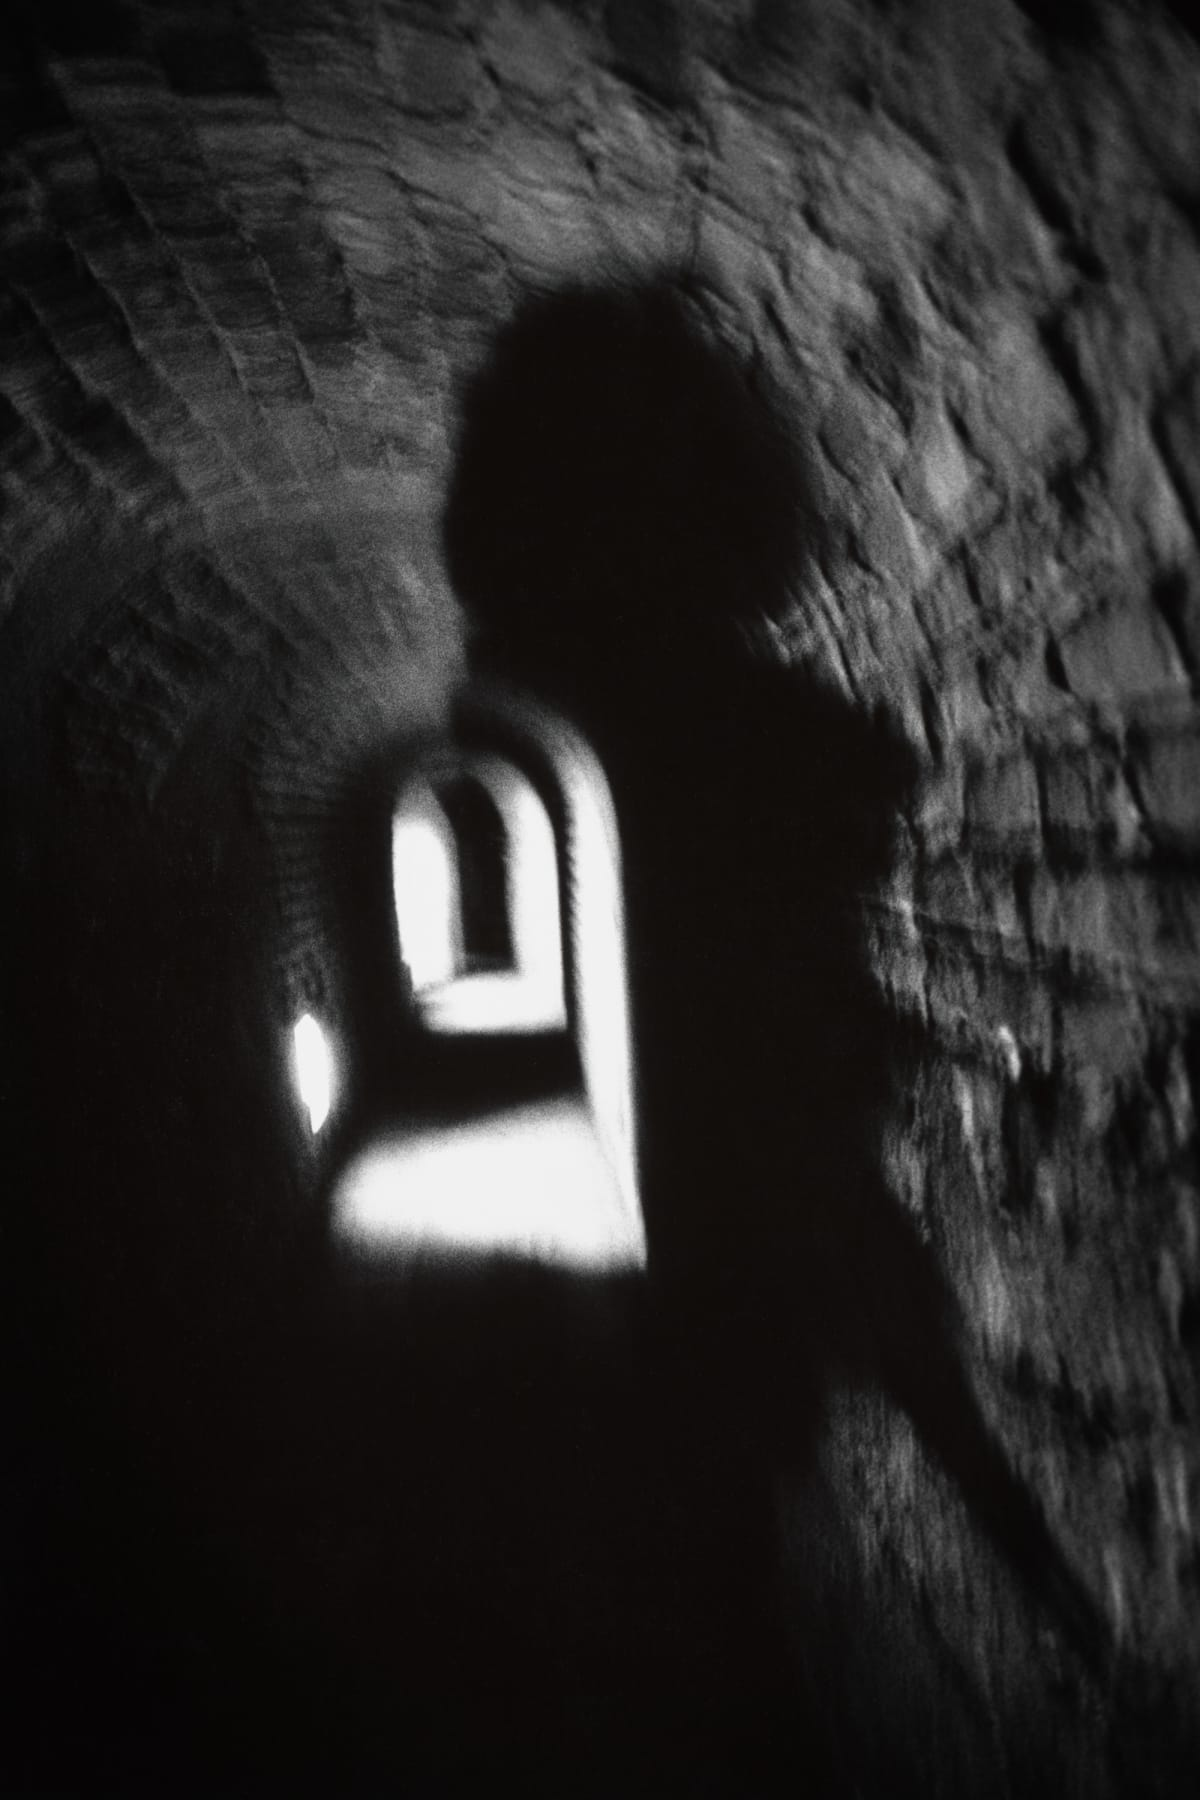 Judy Glickman Lauder Photographer's shadow, underground tunnel, Theresienstadt concentration camp, Czech, 2018 Archival Pigment print 18 x 22""